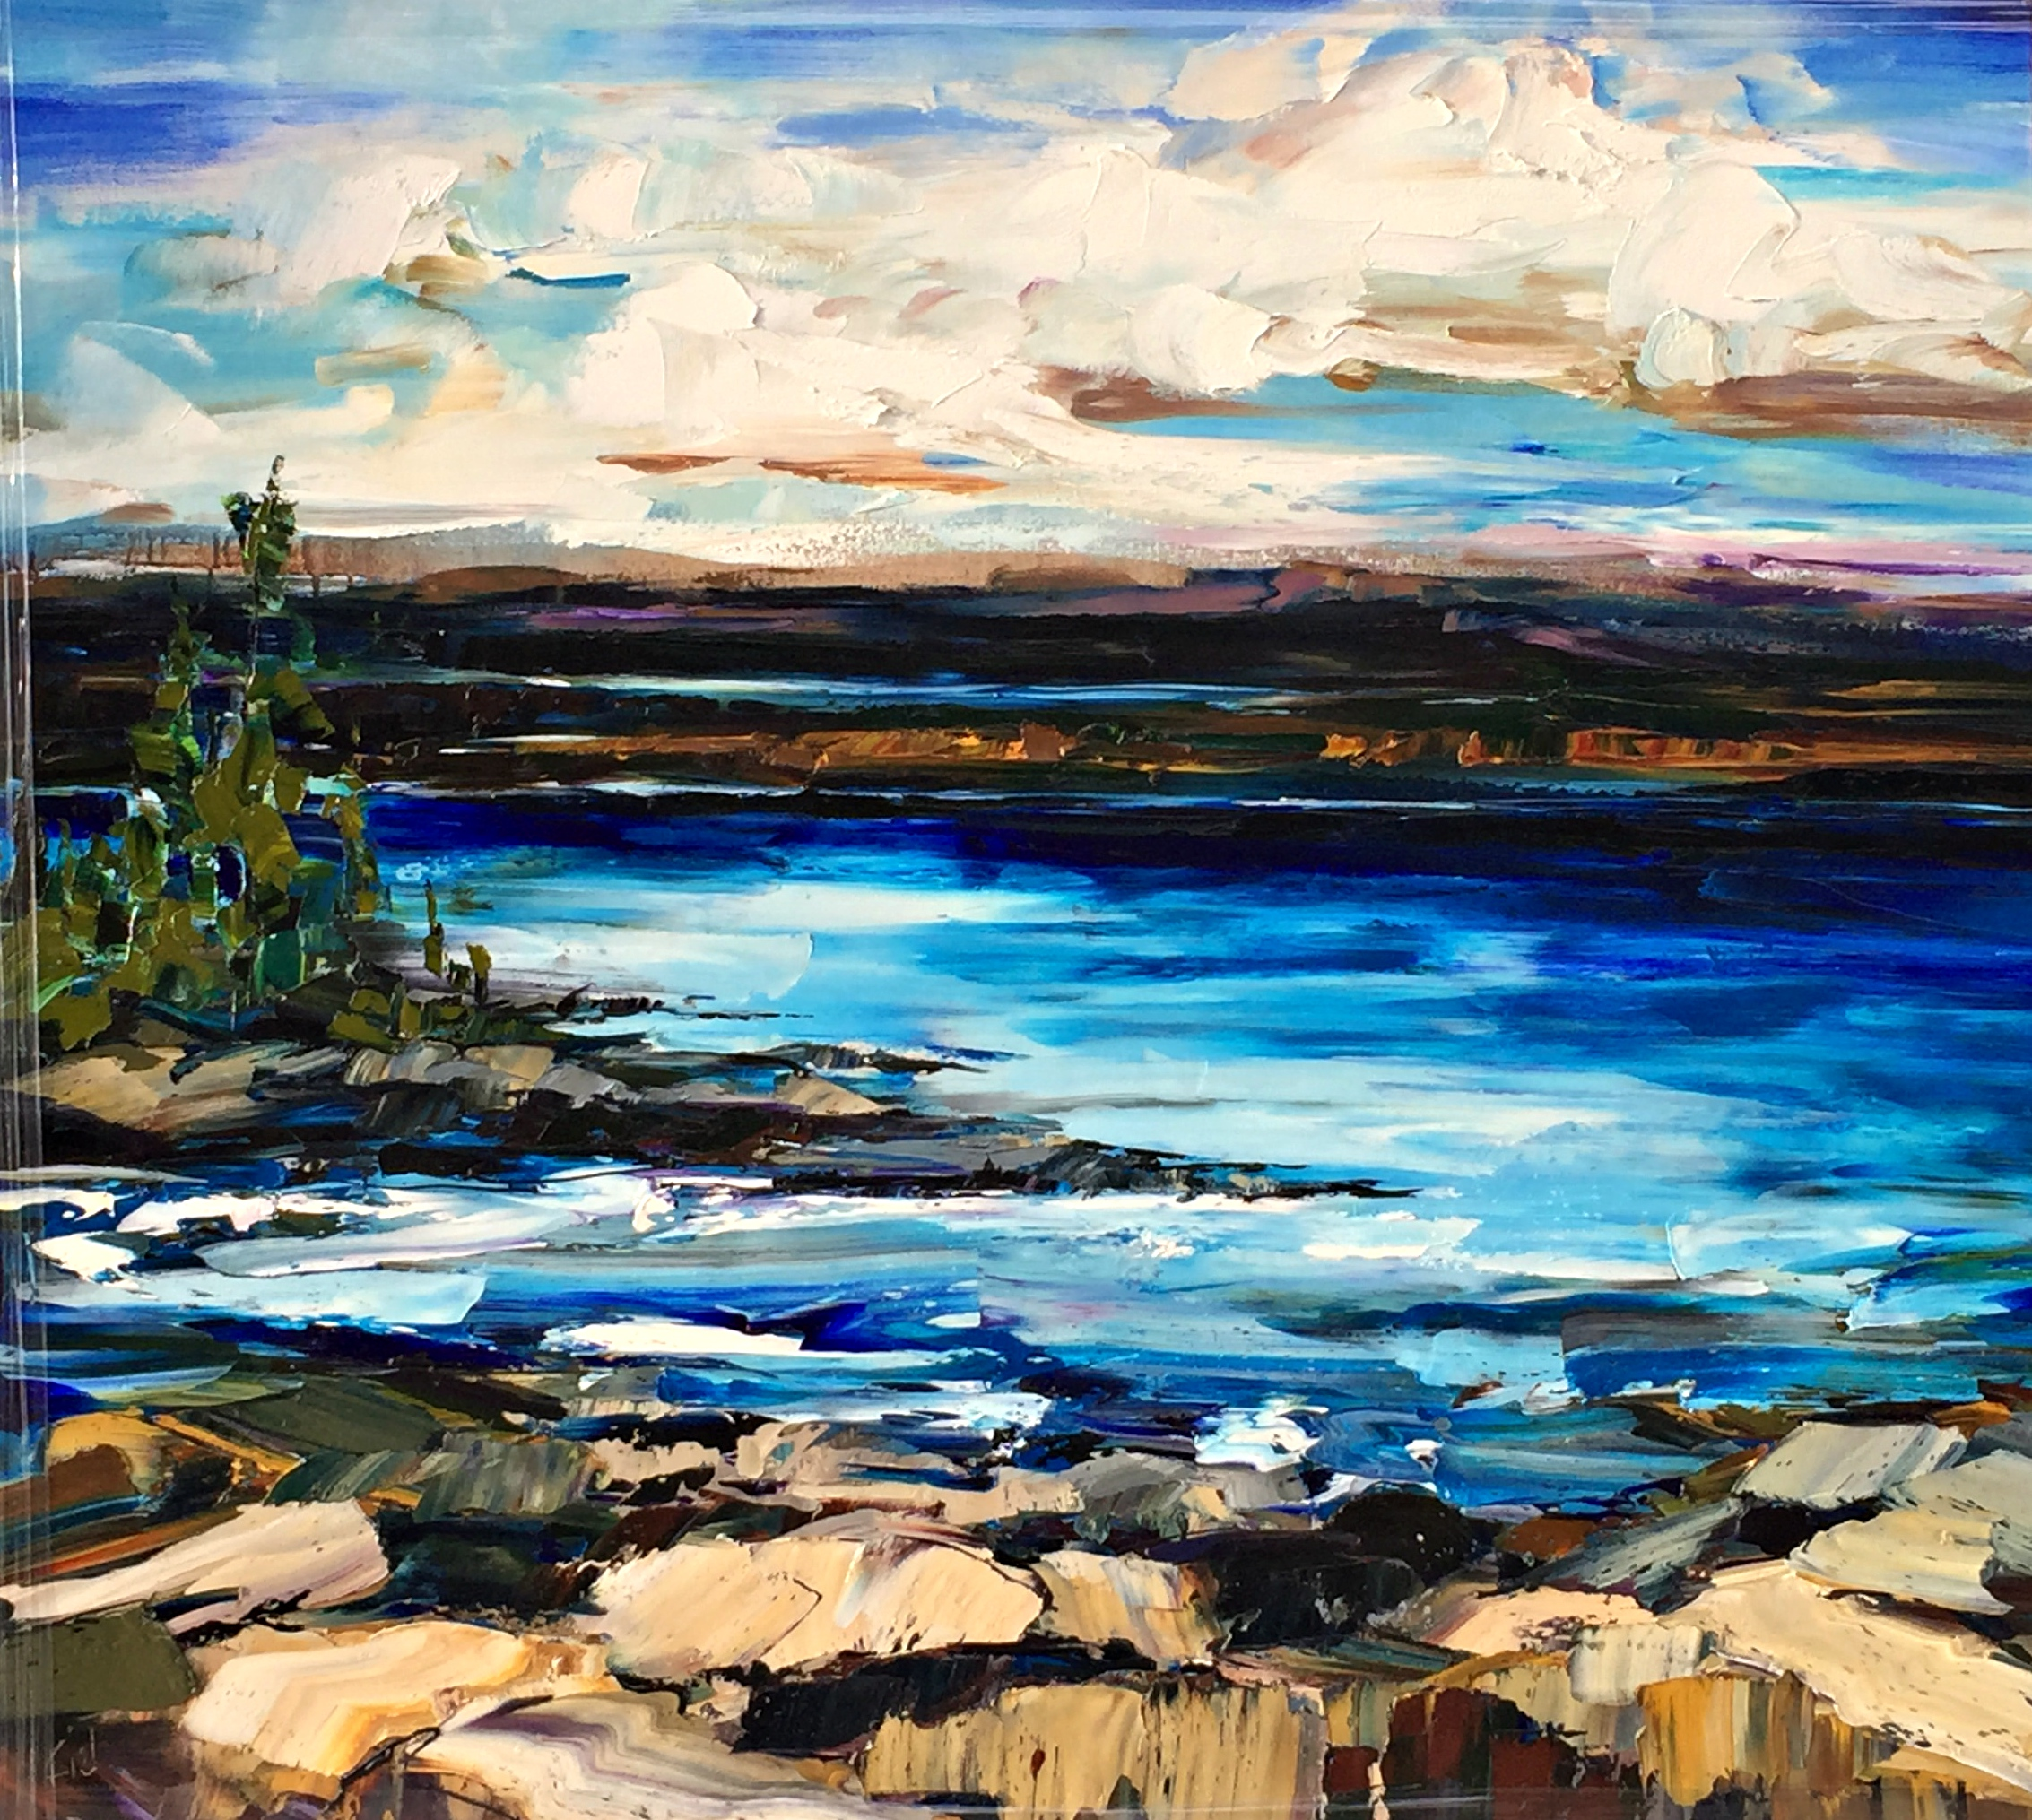 Another Day, landscape oil painting by Kimberly Kiel | Effusion Art Gallery + Cast Glass Studio, Invermere BC